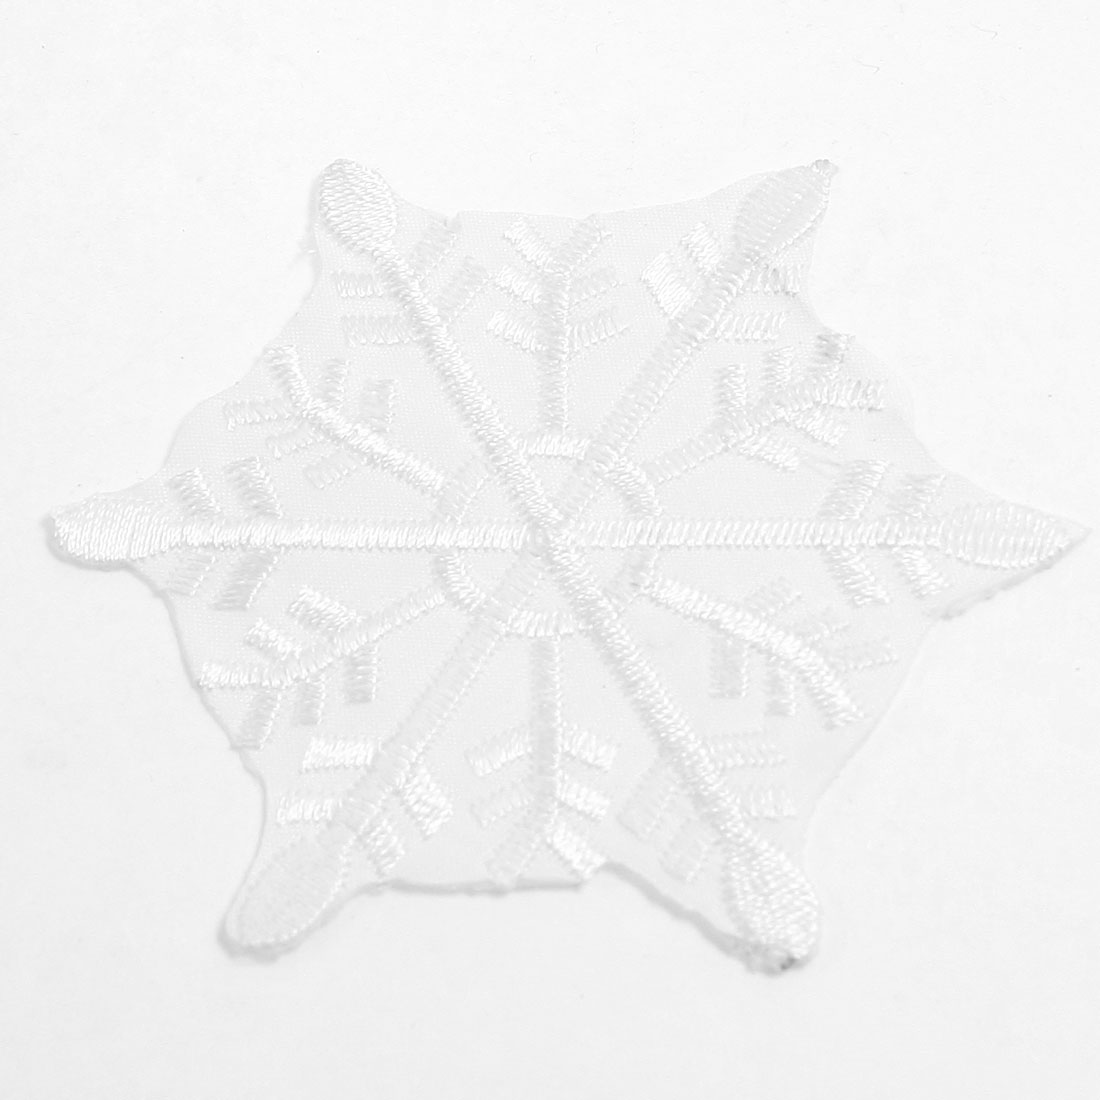 White Snowflake Design Iron On Fabric Embroiderey Sticker Decoration